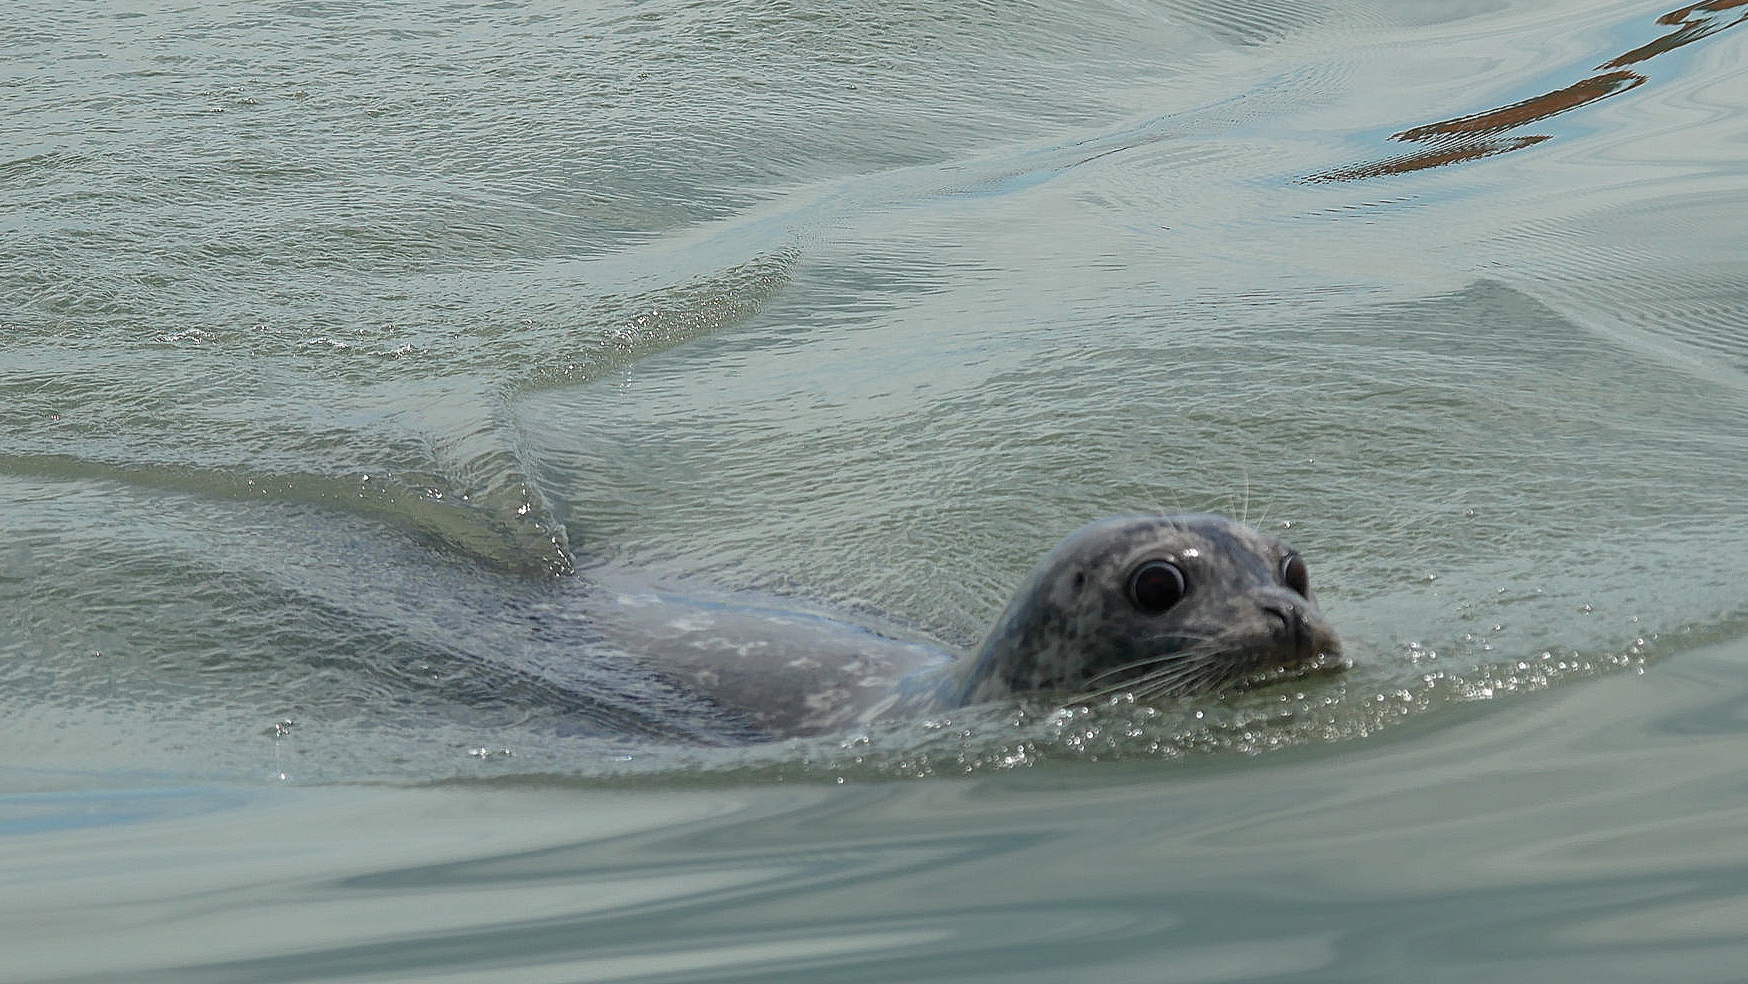 Harbour seal trying to swim away from the Orcas. Photo: Cheyenne Brewster.